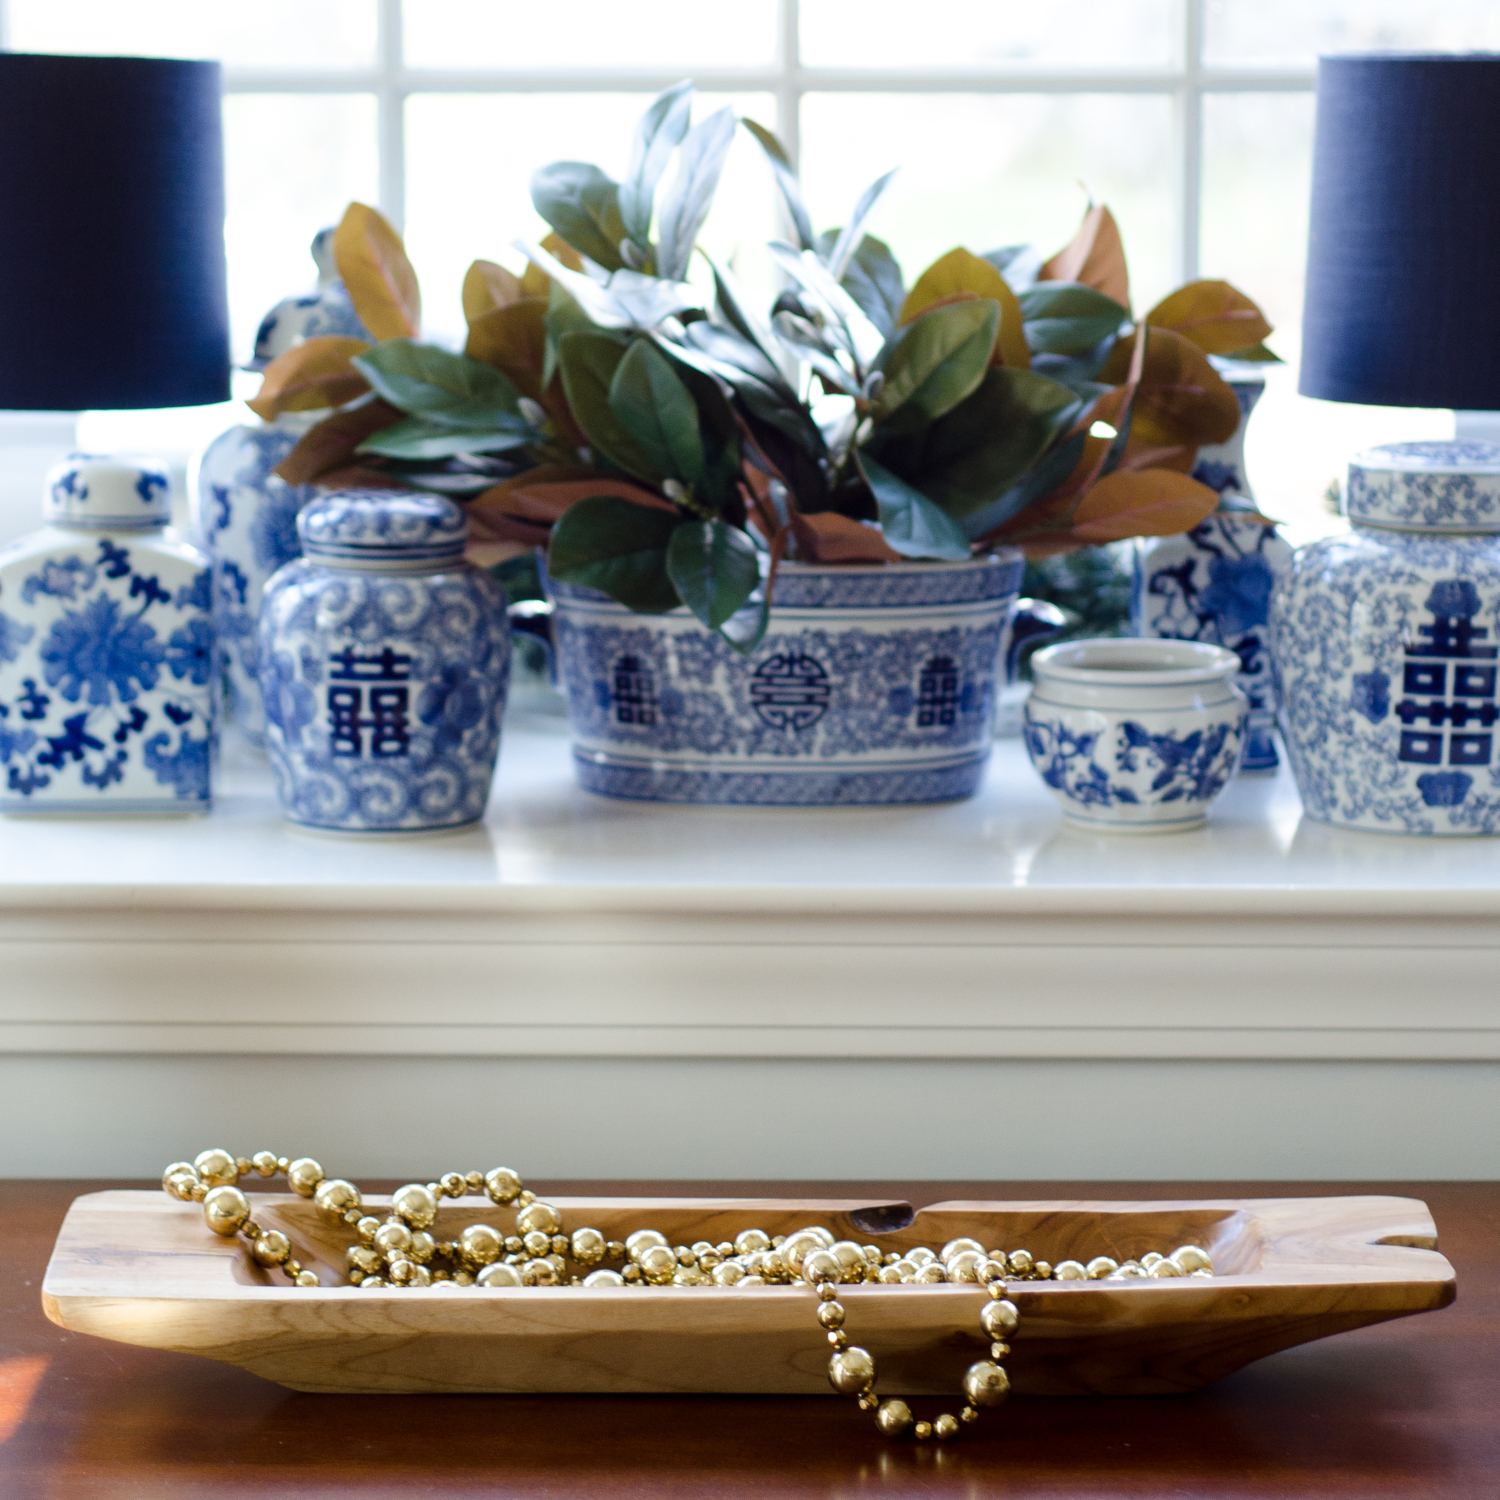 Classic Christmas dining room with blue and white pottery